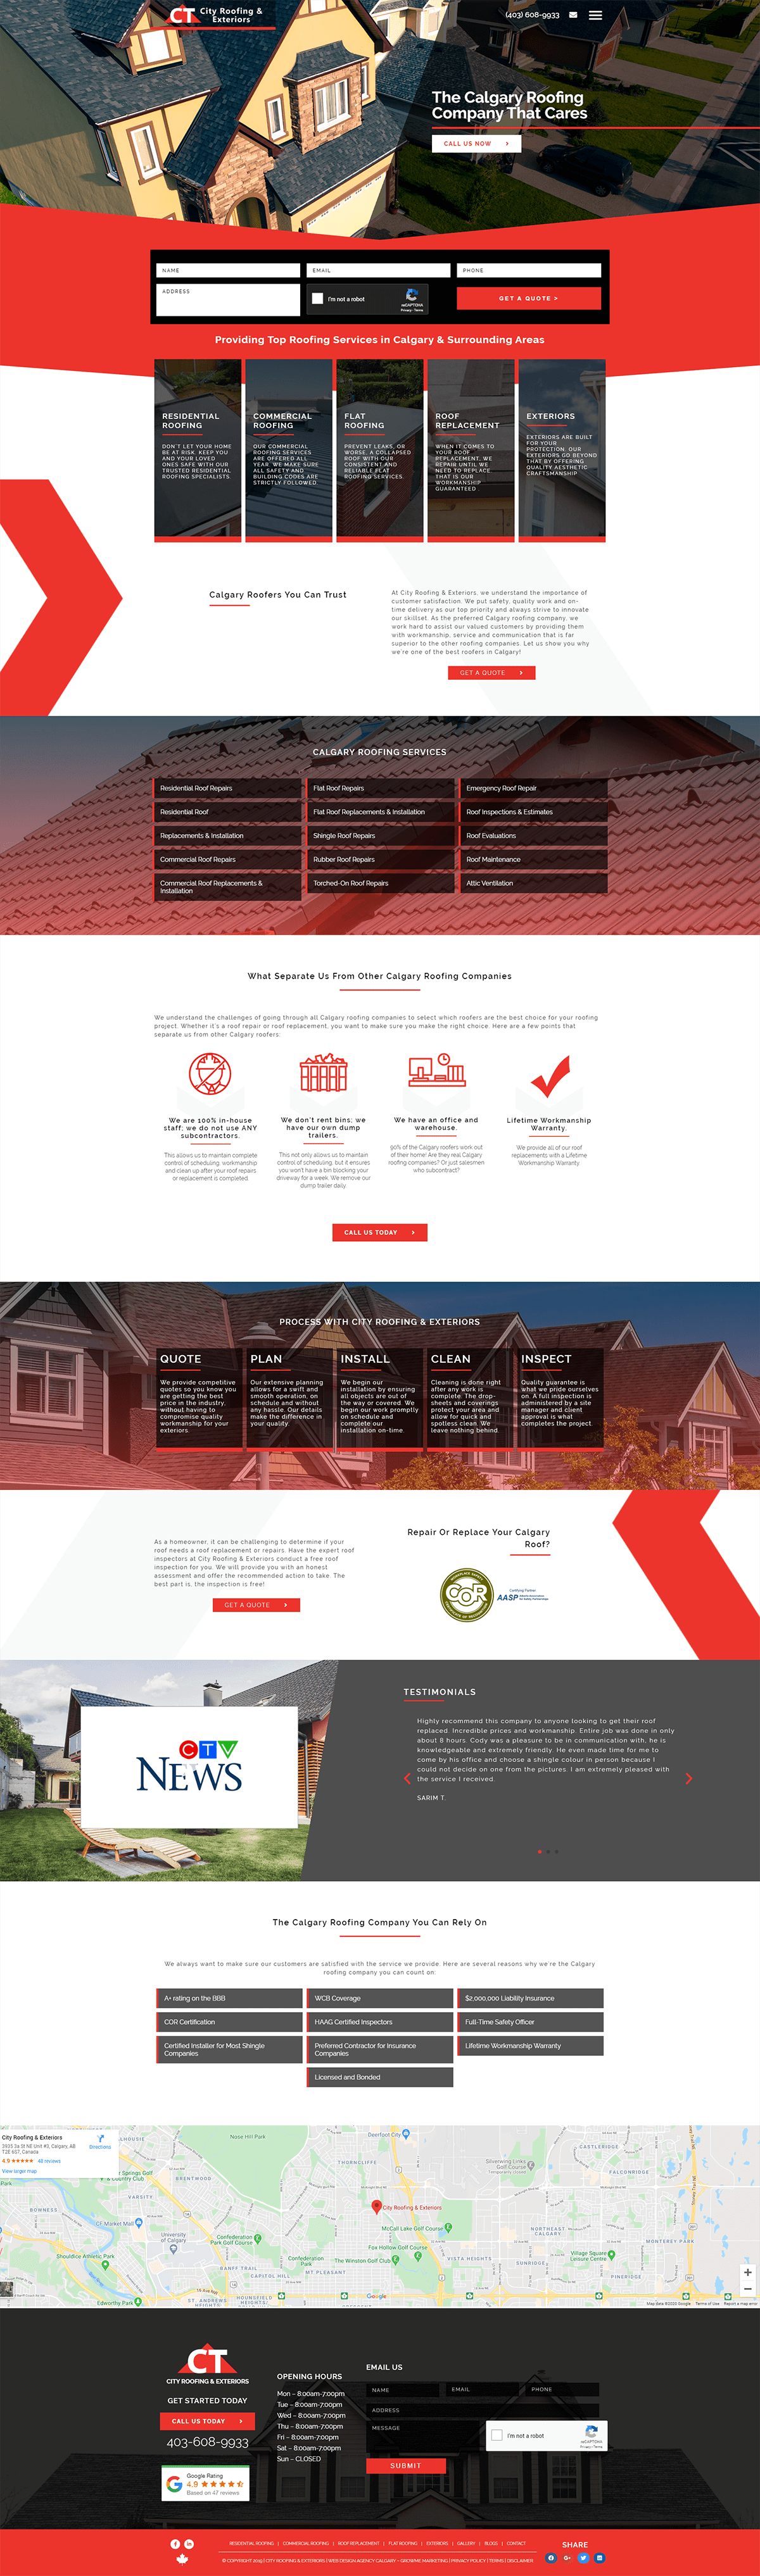 City Roofing Home Page